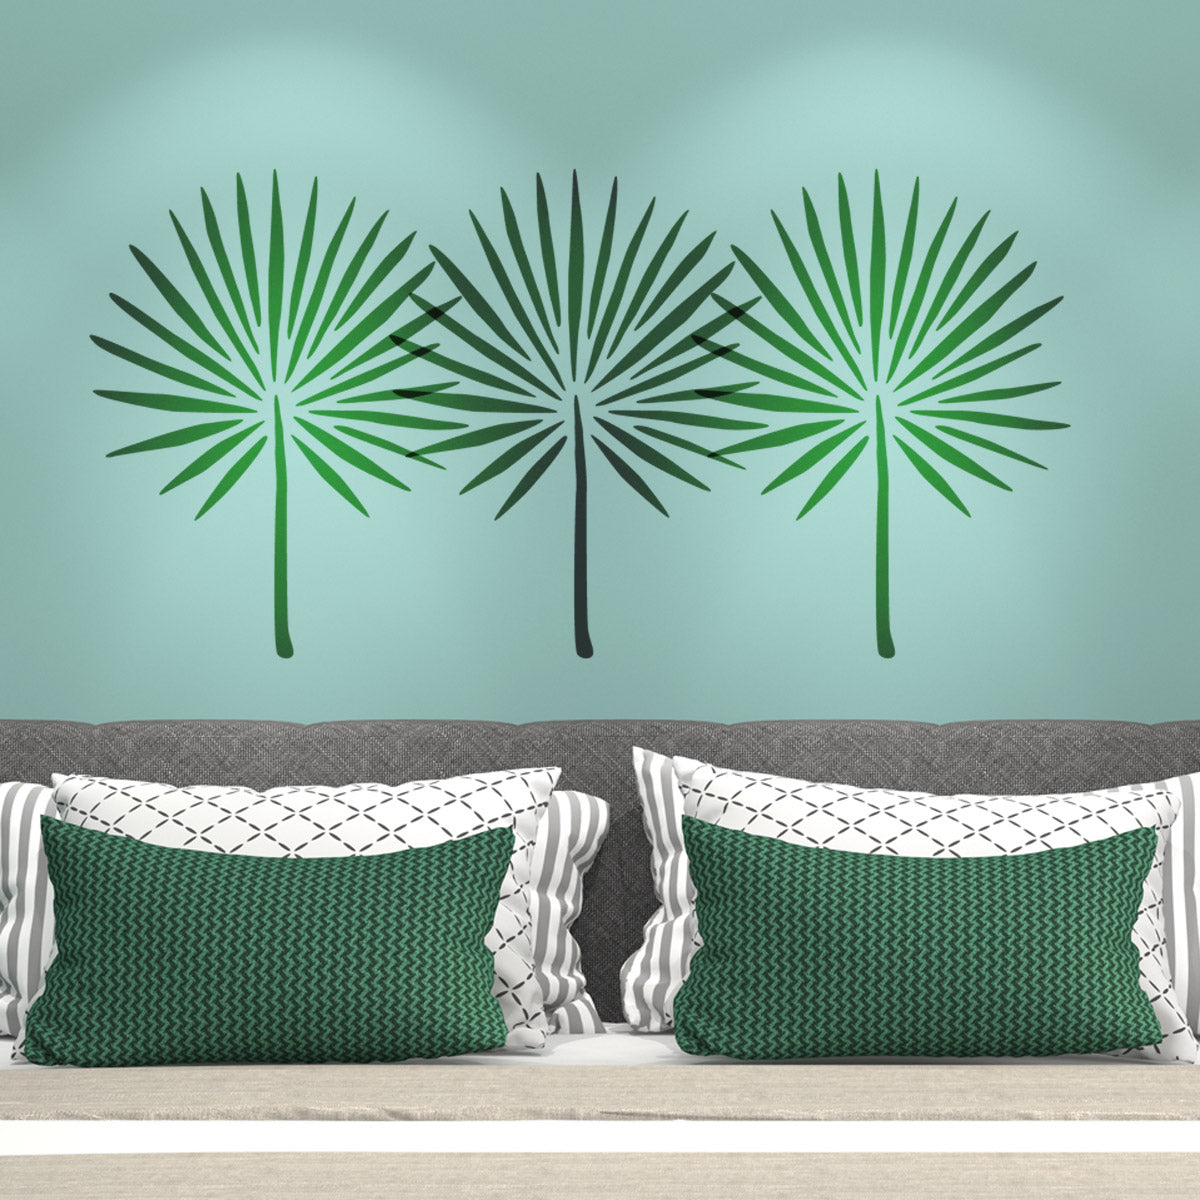 CraftStar Fan Palm Leaf Stencil on bedroom wall